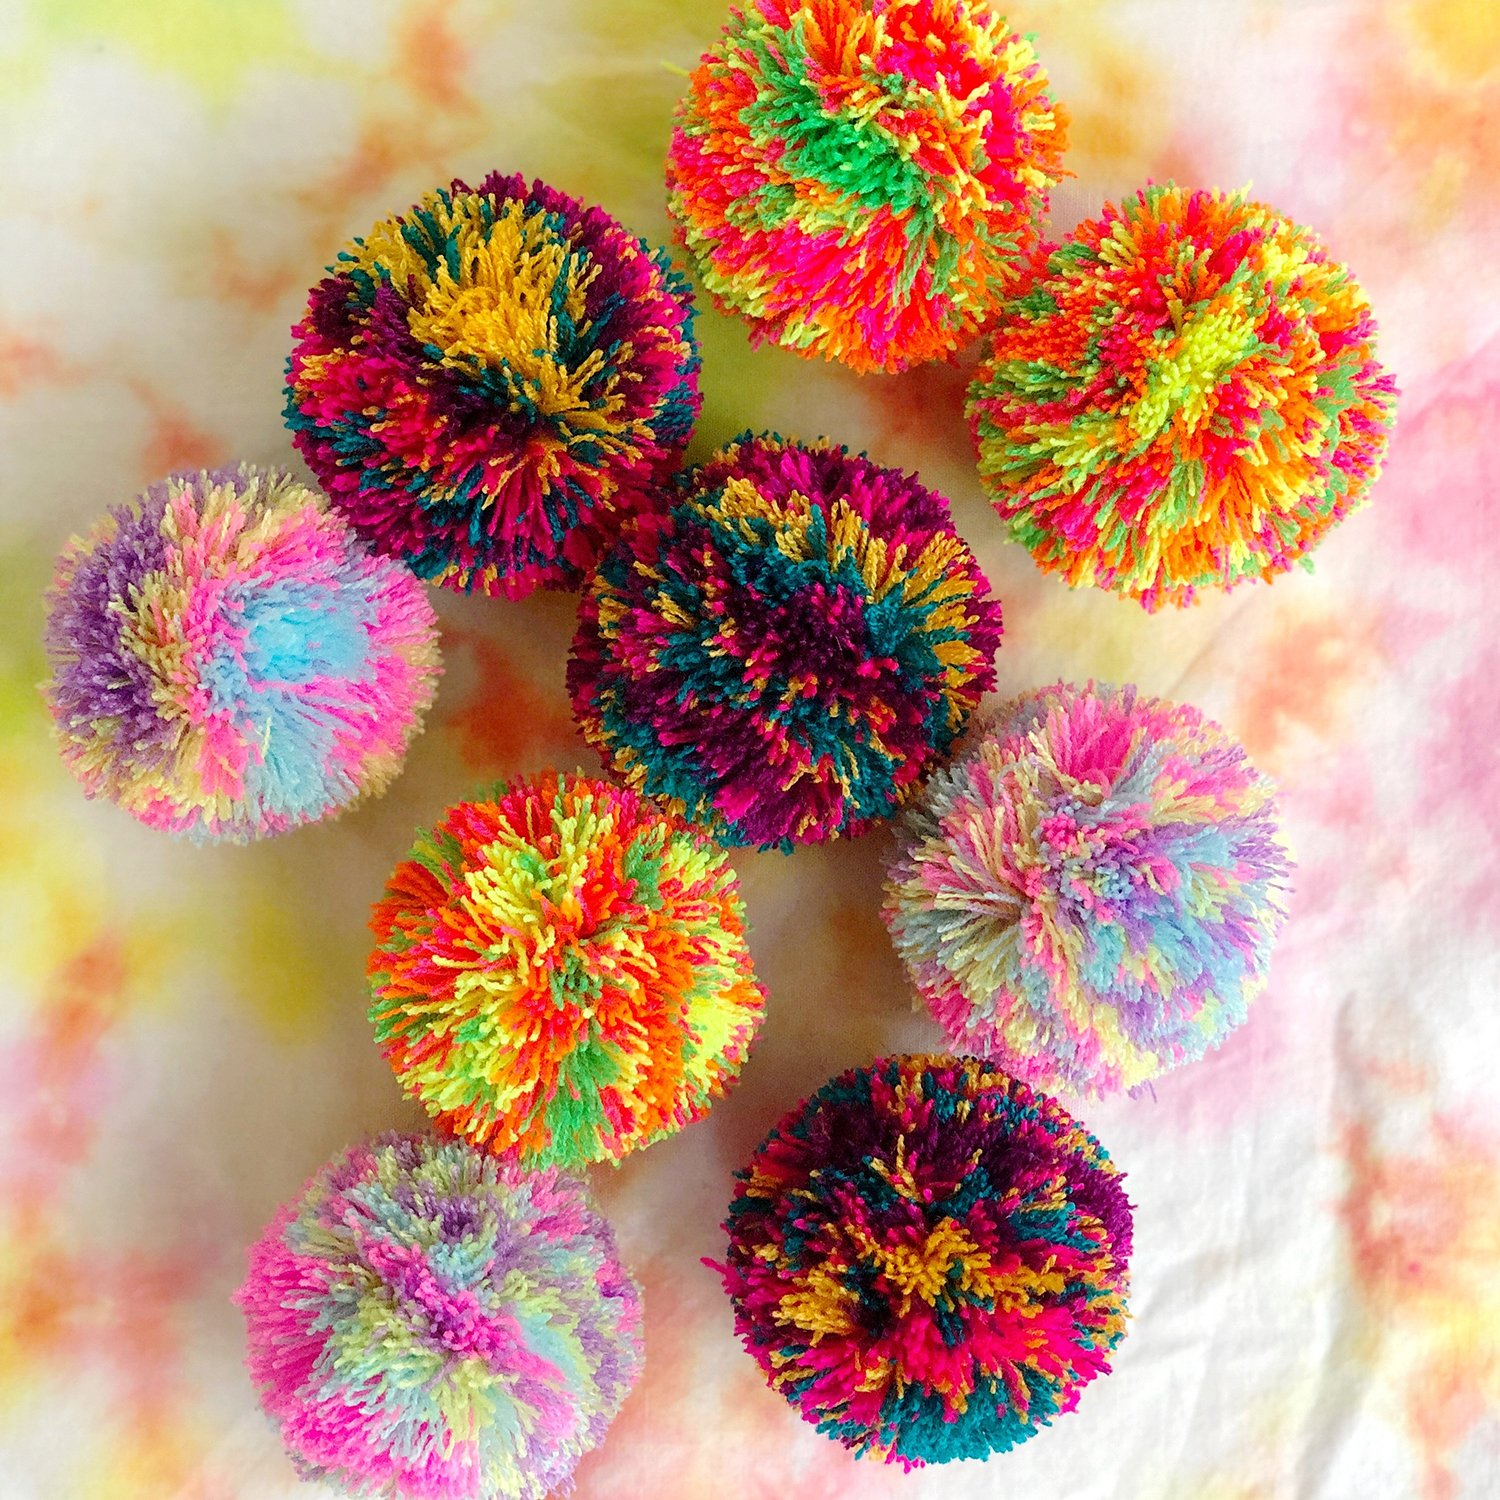 How to Make Tie Dye Pom Poms - The Neon Tea Party